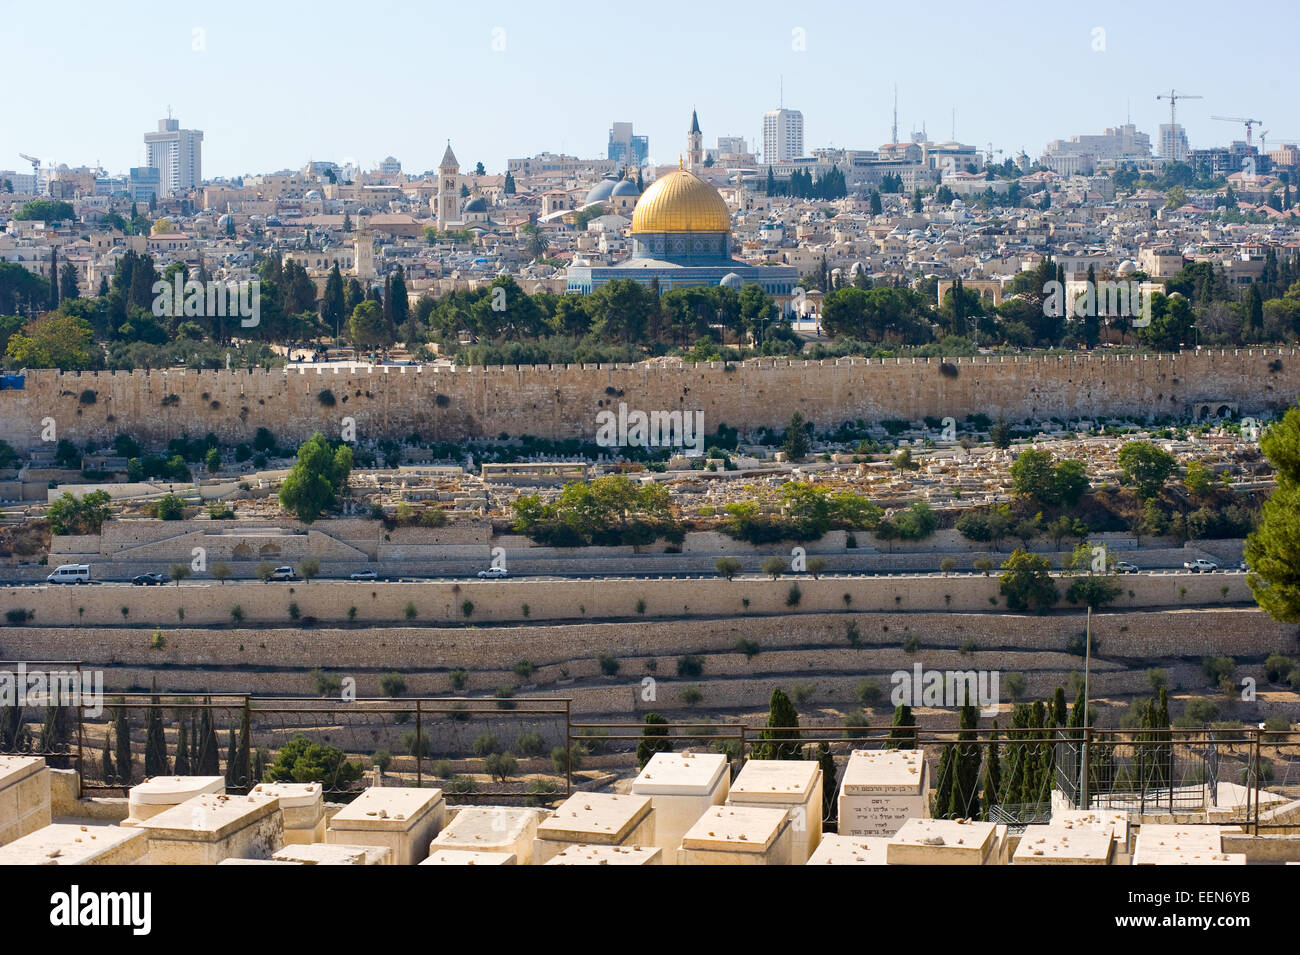 The dome of the rock as seen from the mount of olives - Stock Image